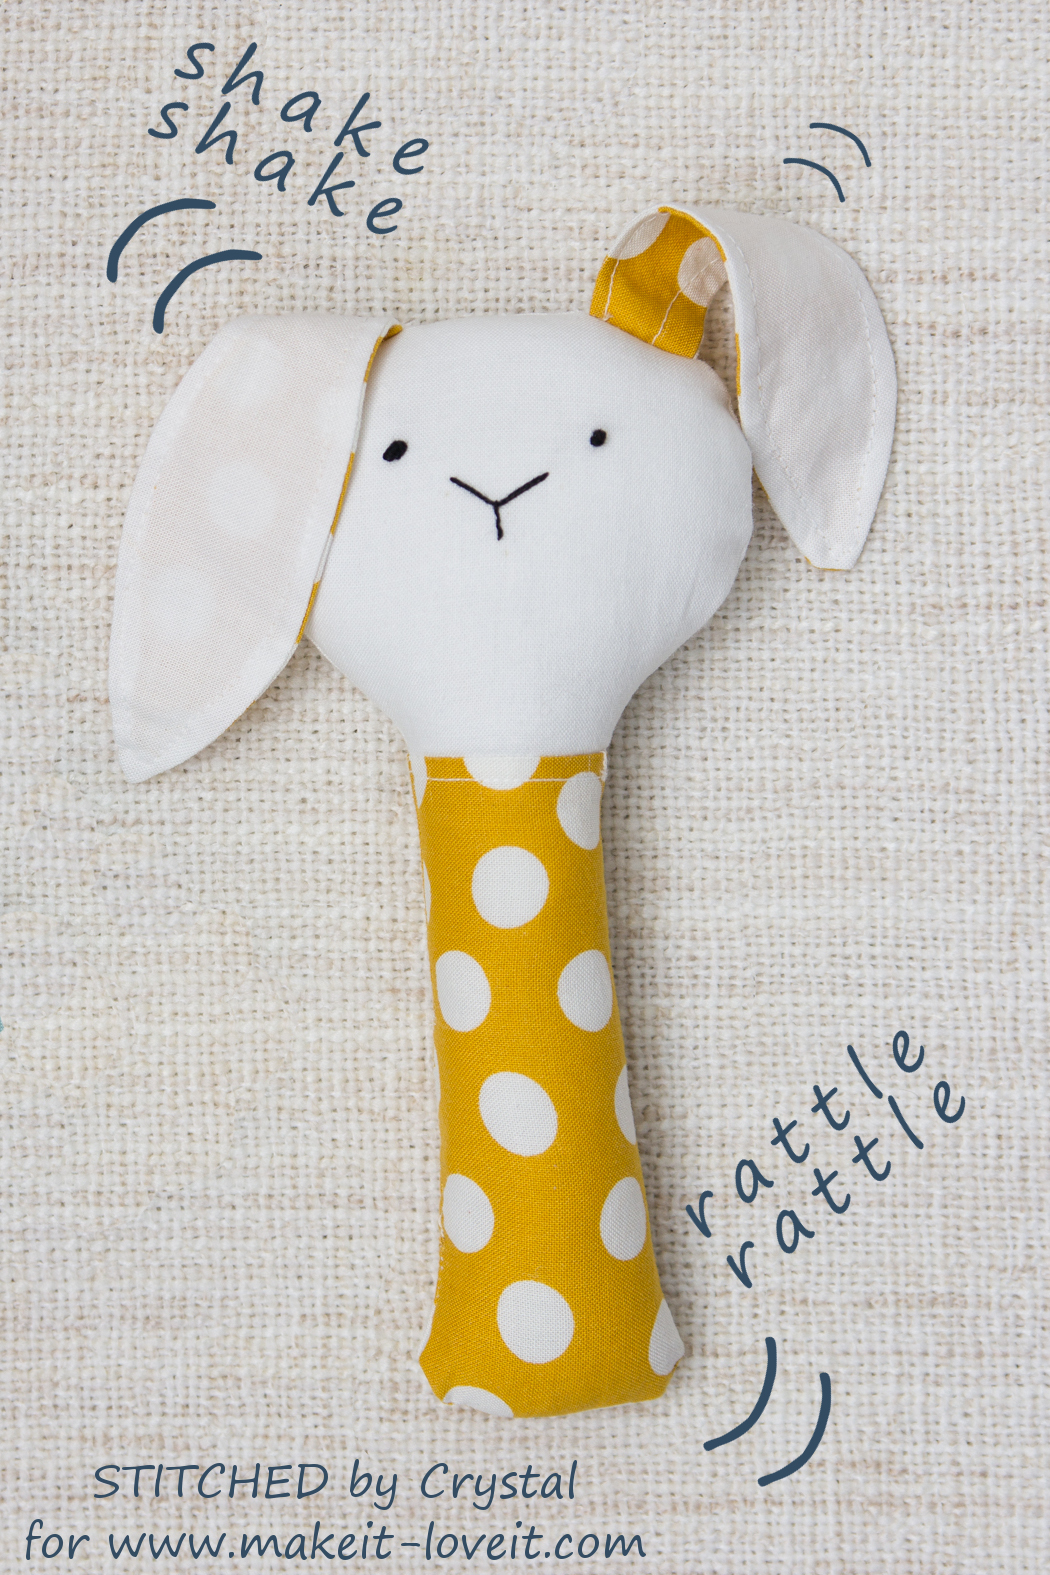 Sew a Plush Rattle for Baby (...bunny, cat, & mouse)! | via makeit-loveit.com